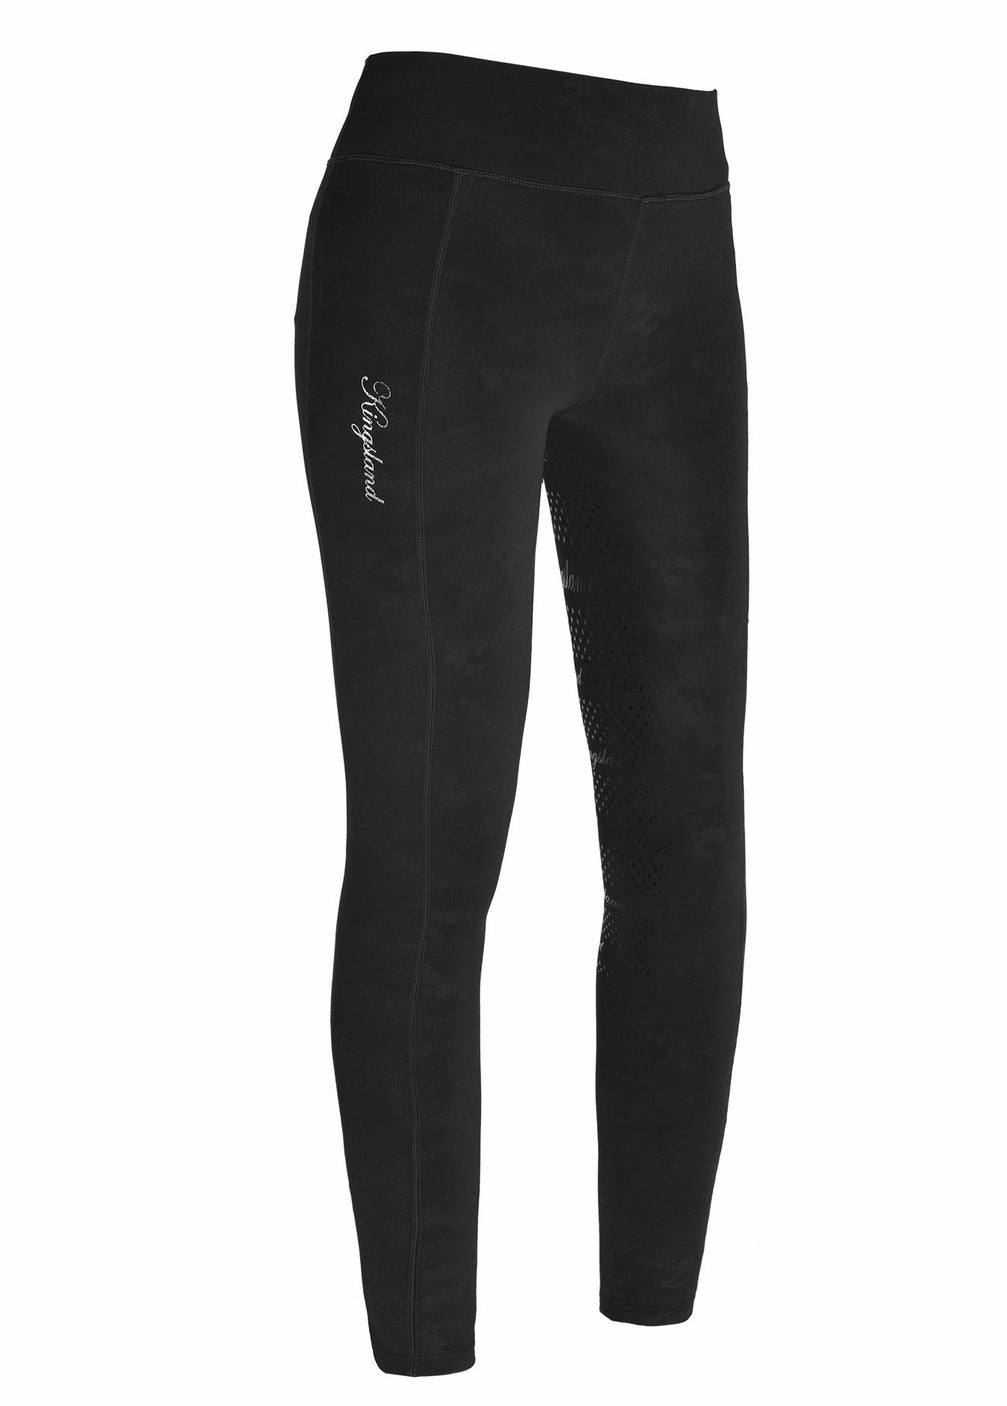 Kingsland Kemmie Girls' Full Grip Riding Tights